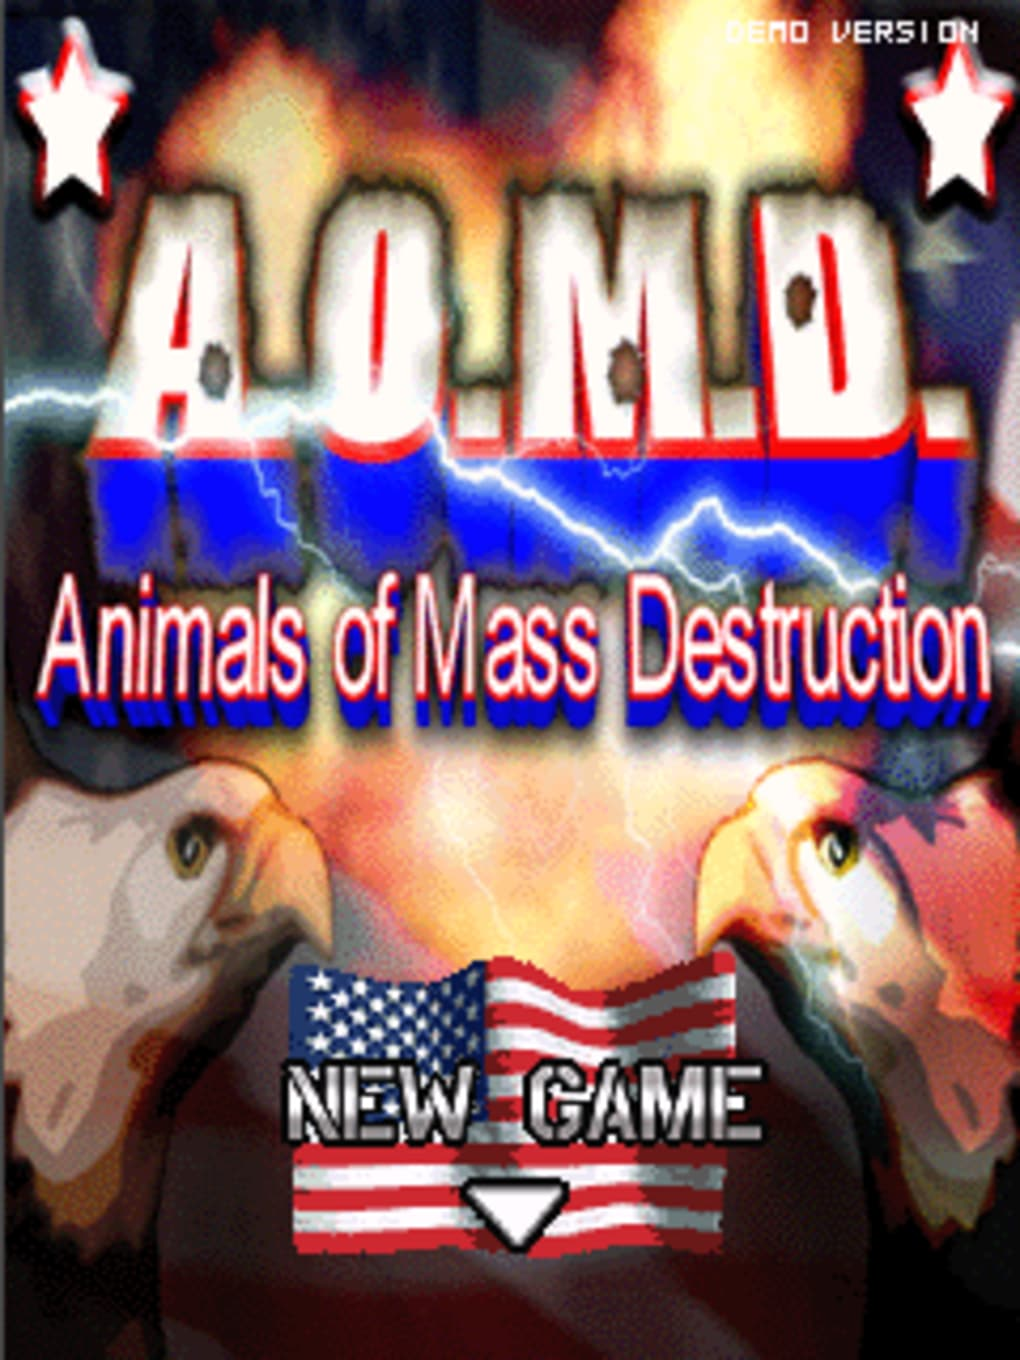 Animals of Mass Destruction for Windows Mobile - Download